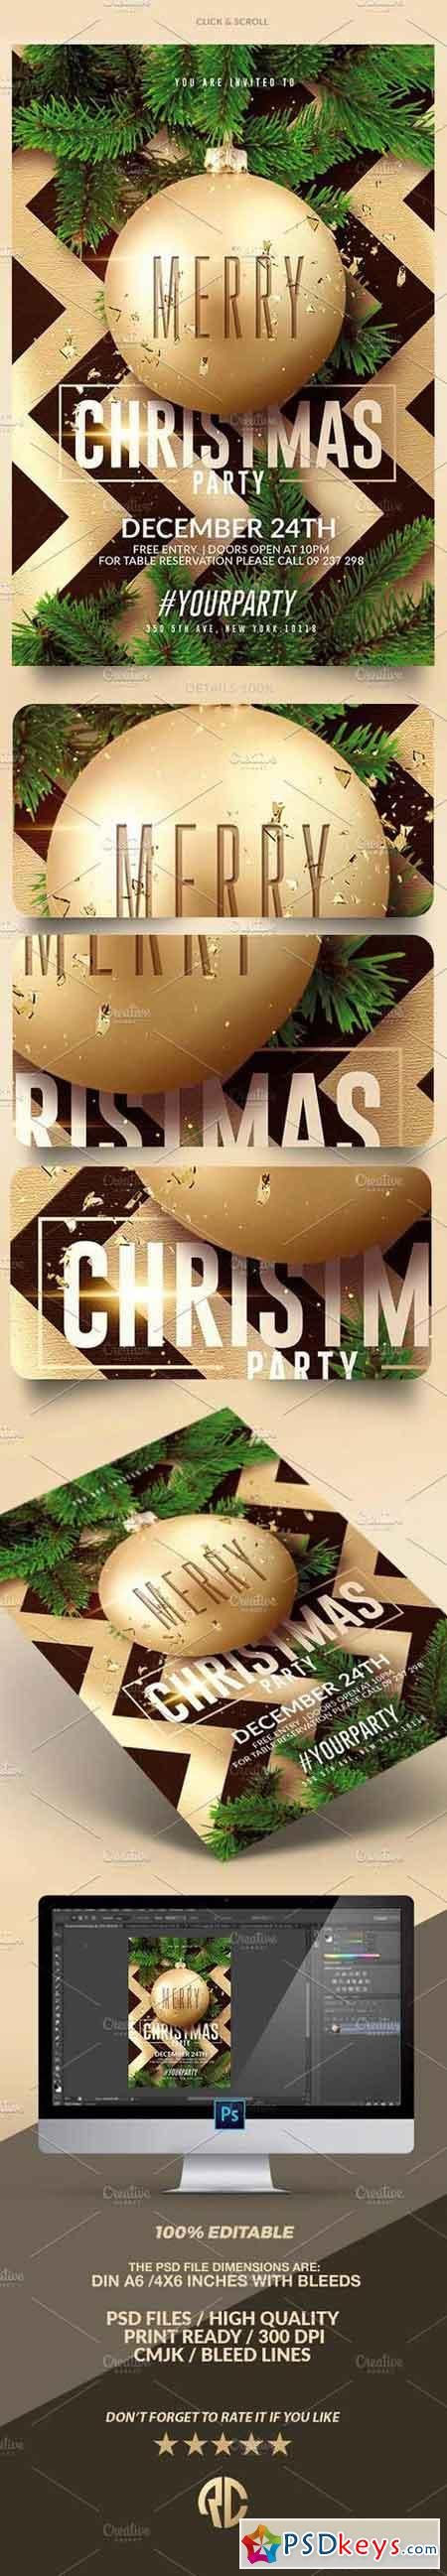 Christmas Party - Flyer Template 1070487